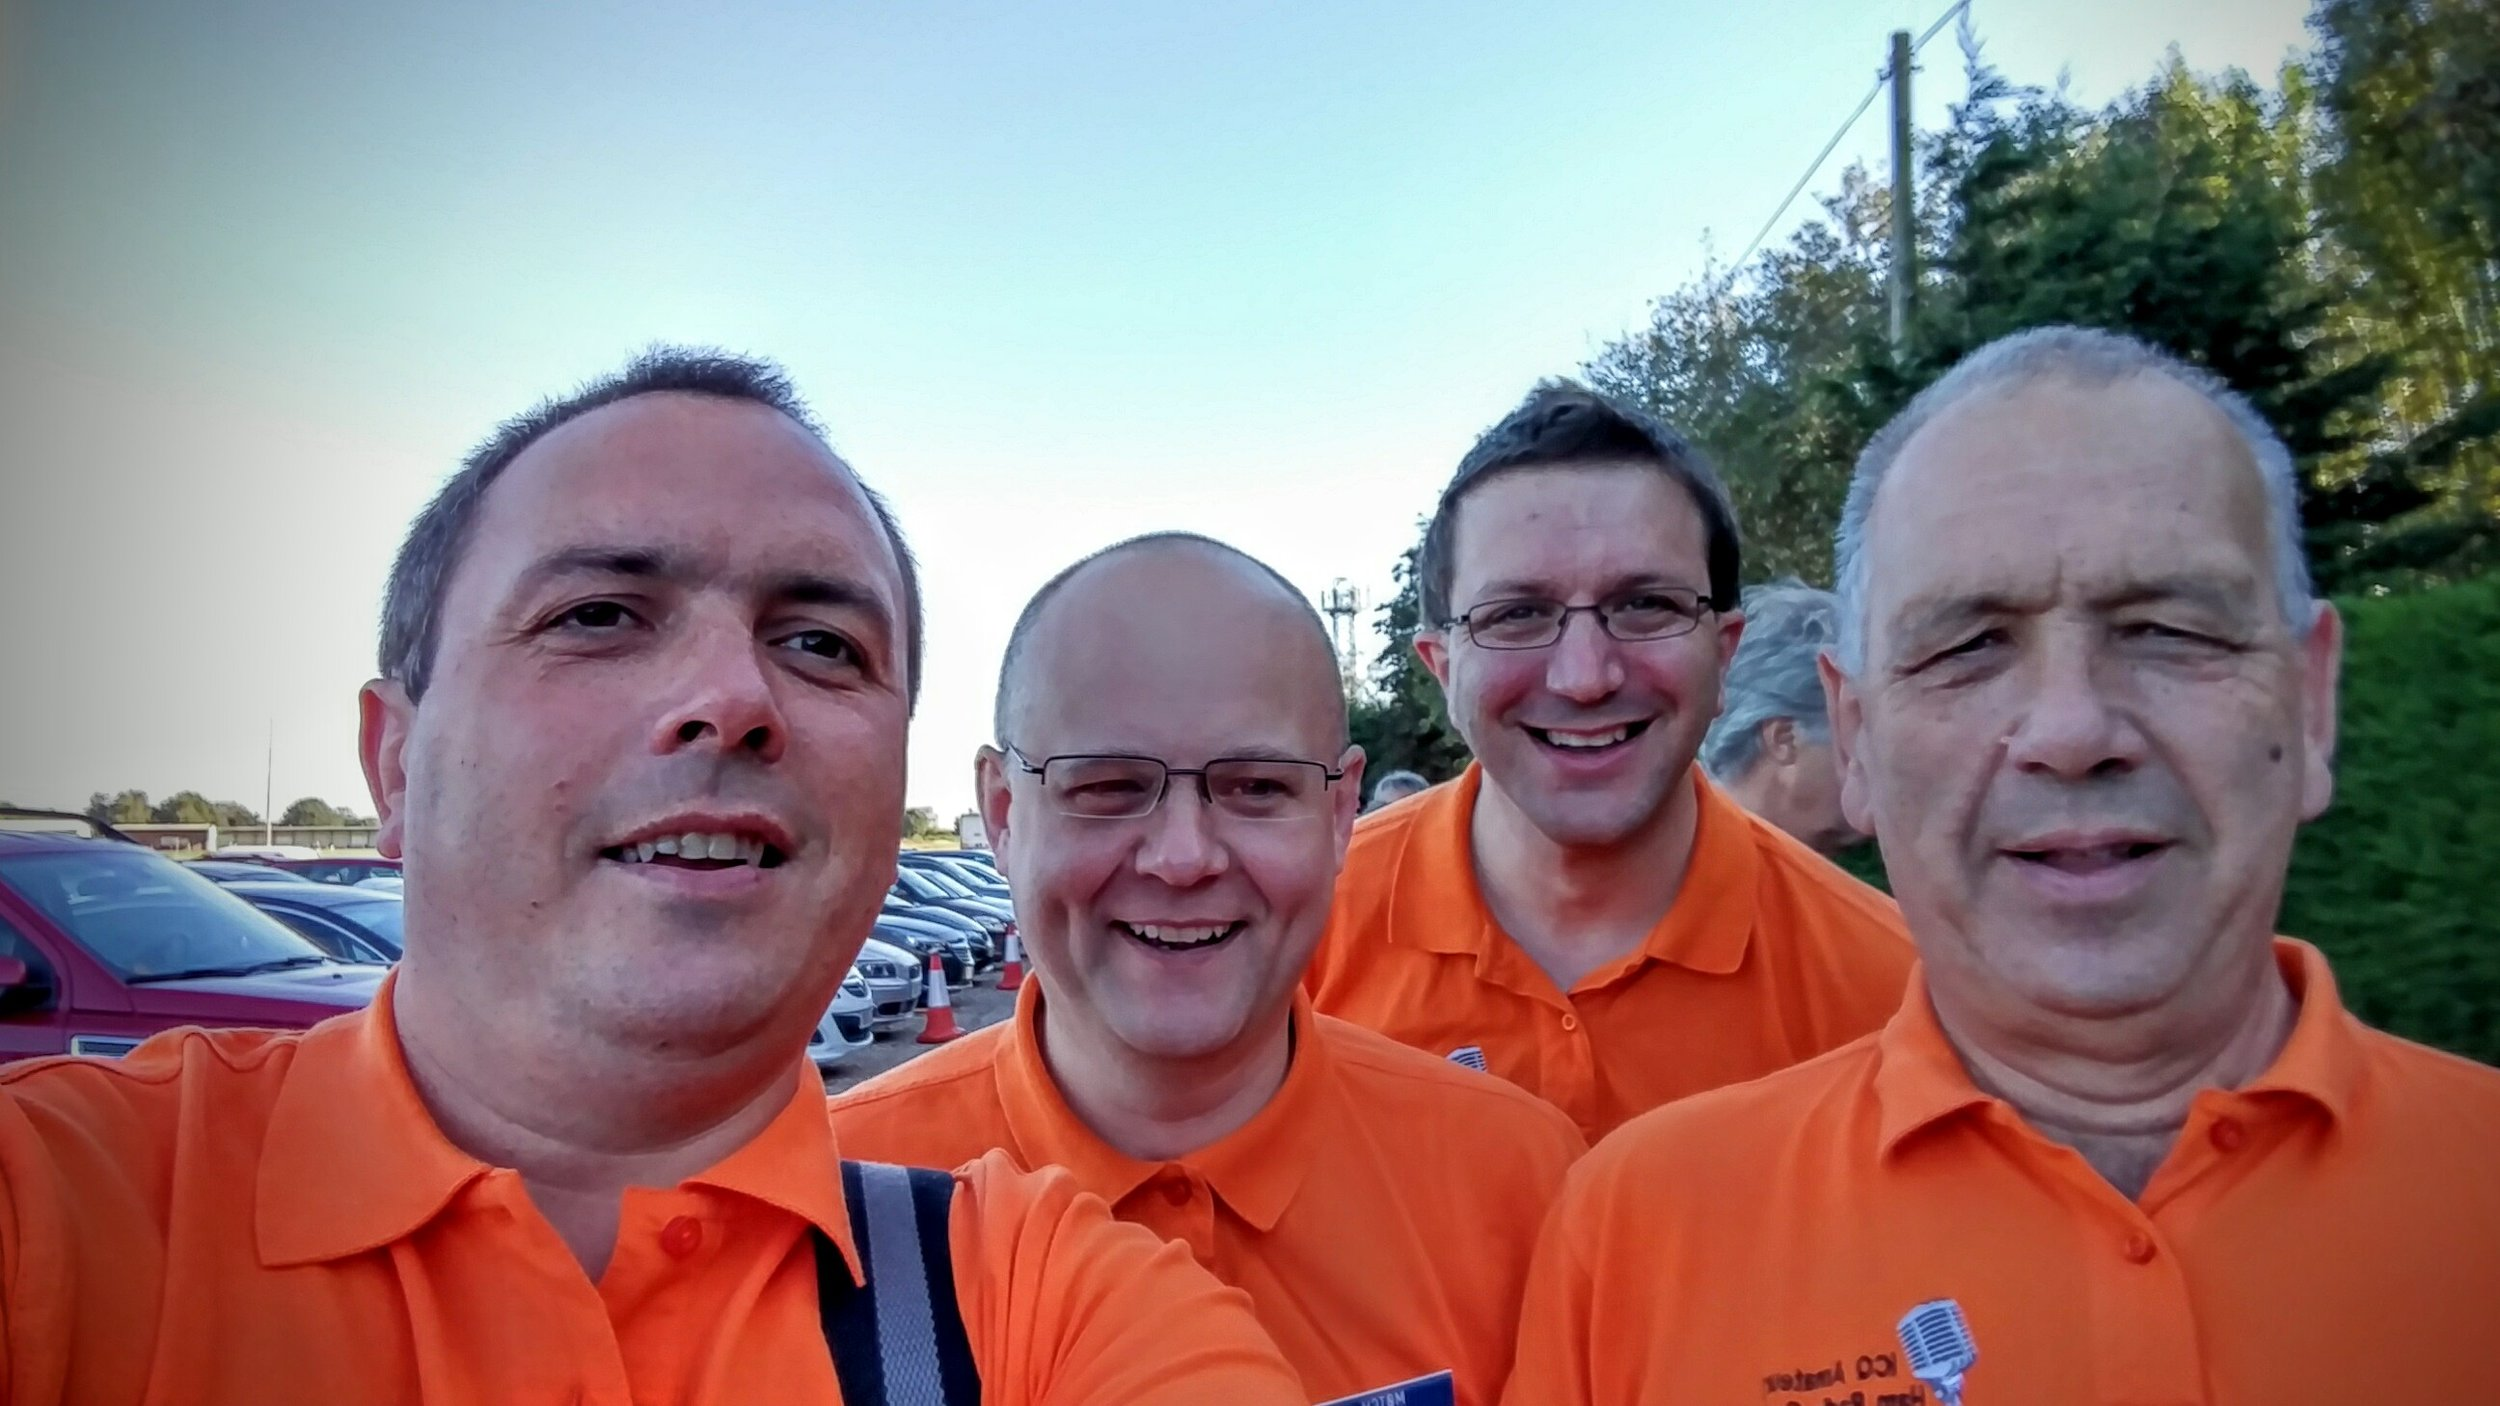 Martin Butler (M1MRB / W9ICQ), Colin Butler (M6BOY), Chris Howard (M0TCH) and Martin Rothwell (M0SGL) queue to get into Hamfest